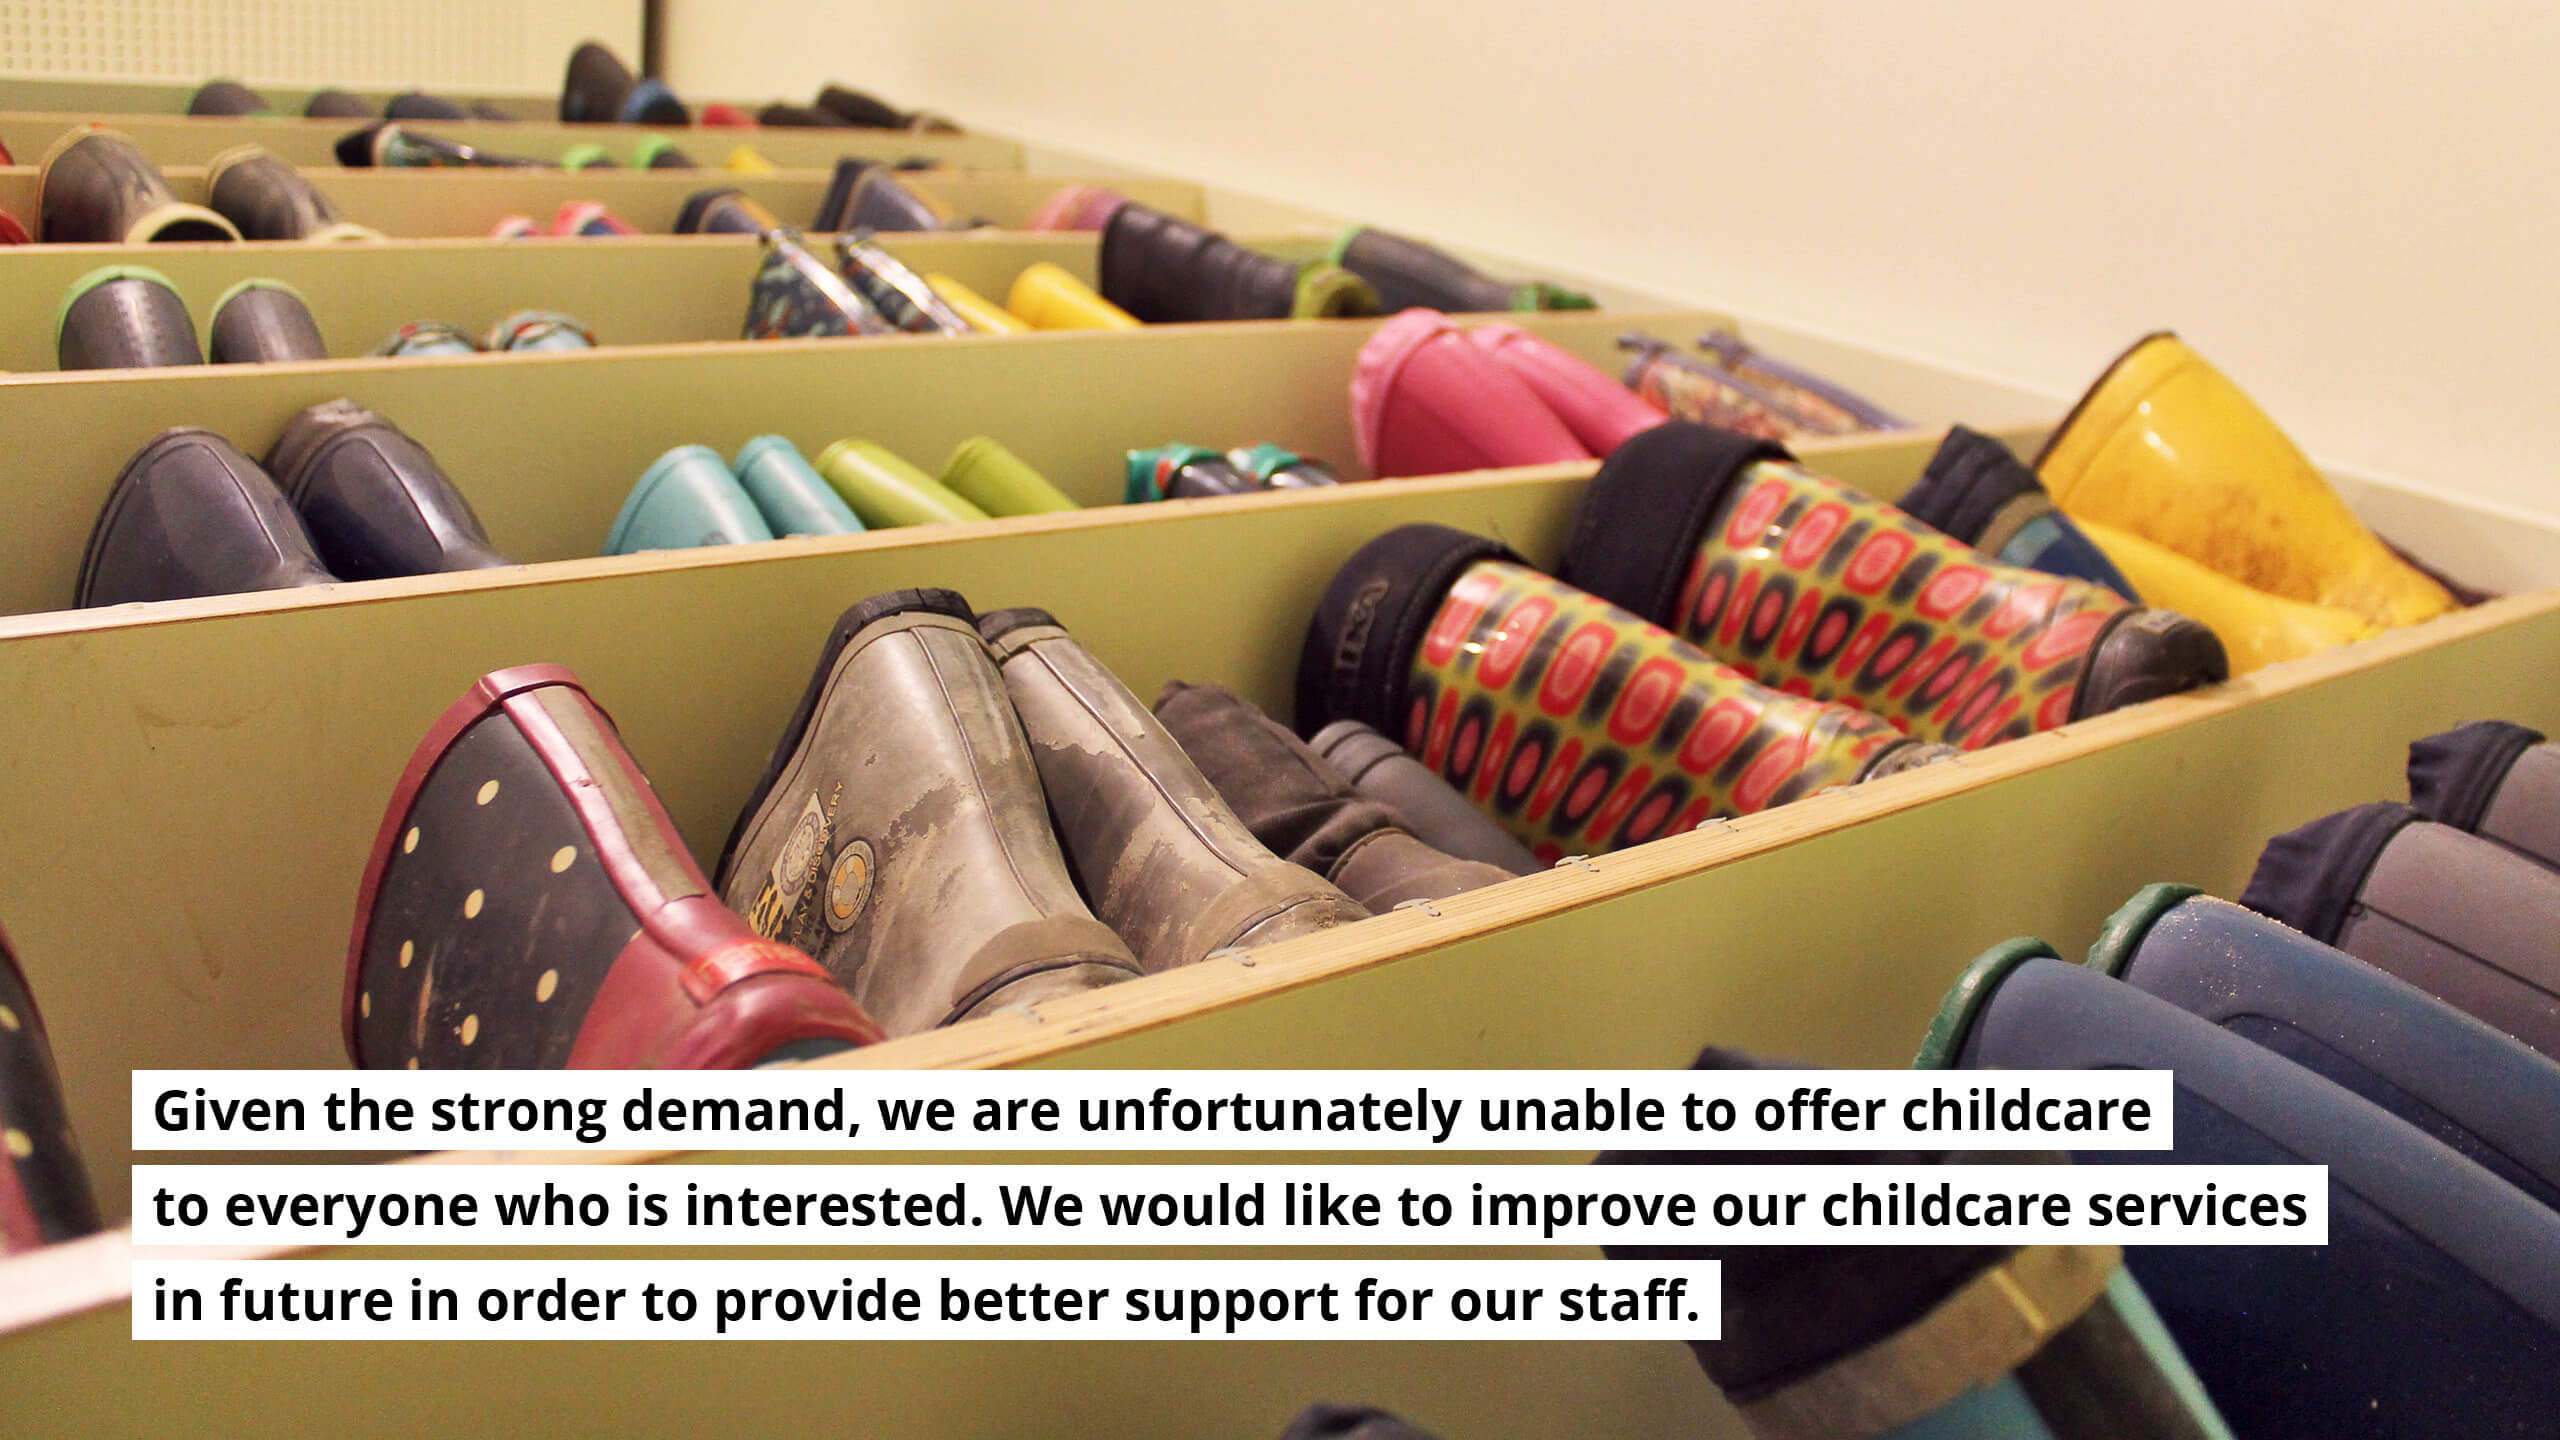 Given the strong demand, we are unfortunately unable to offer childcare to everyone who is interested. We would like to improve our childcare services in future in order to provide better support for our staff.